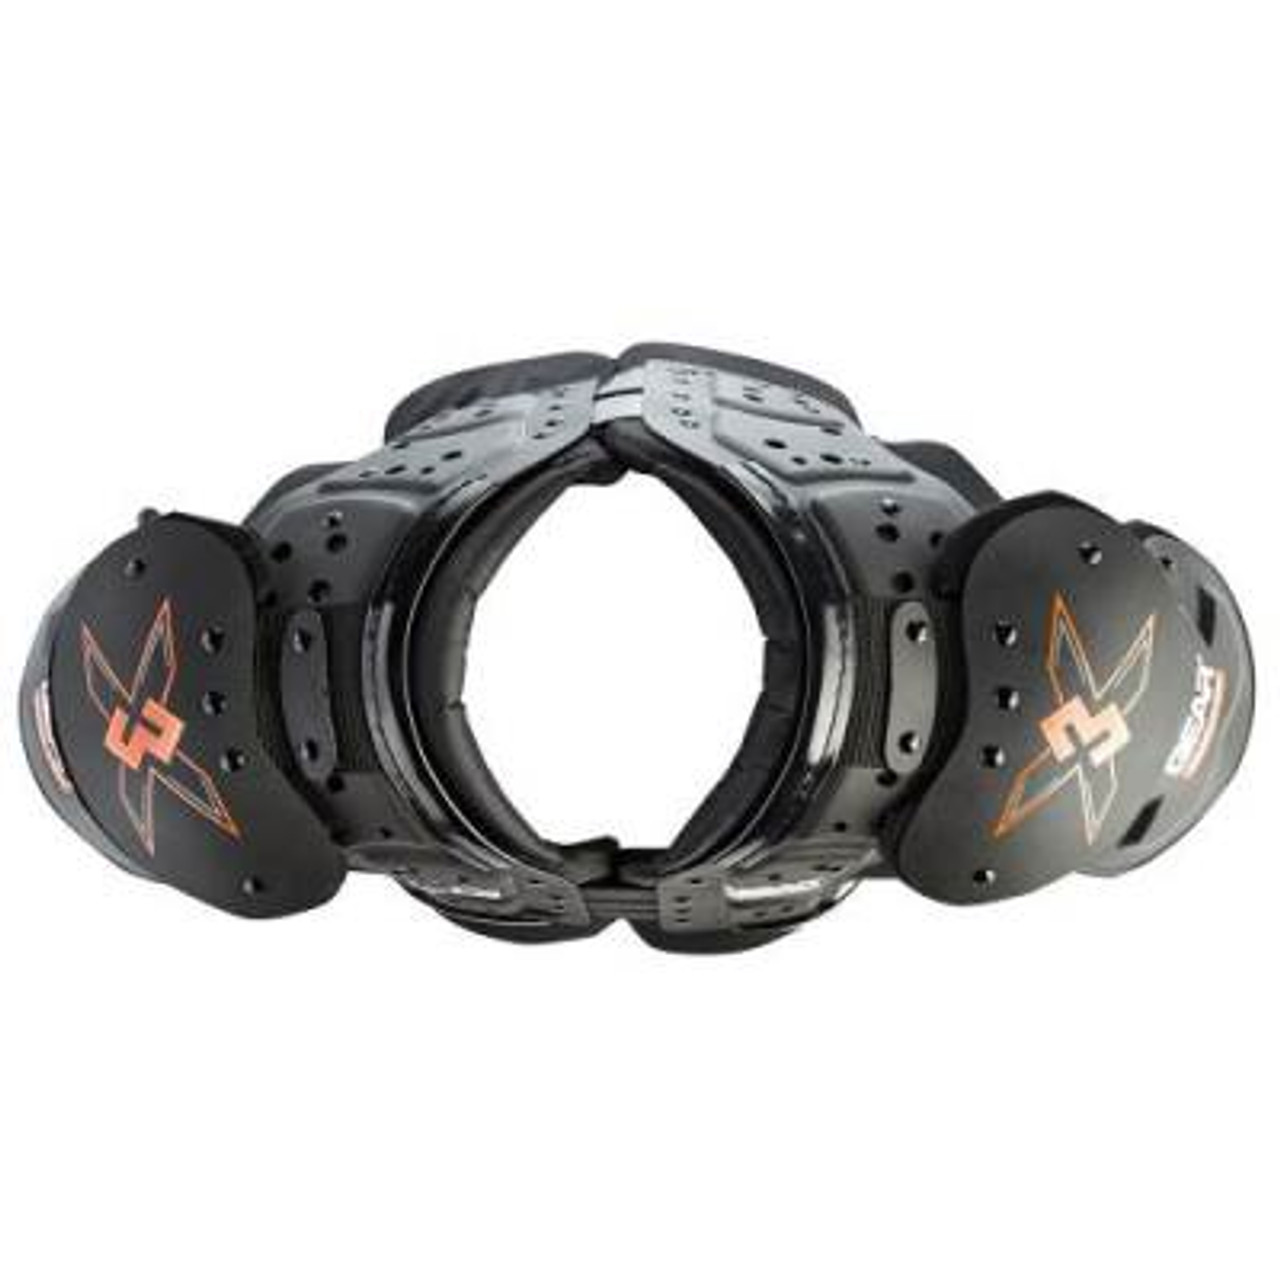 X3 youth shoulder pads2